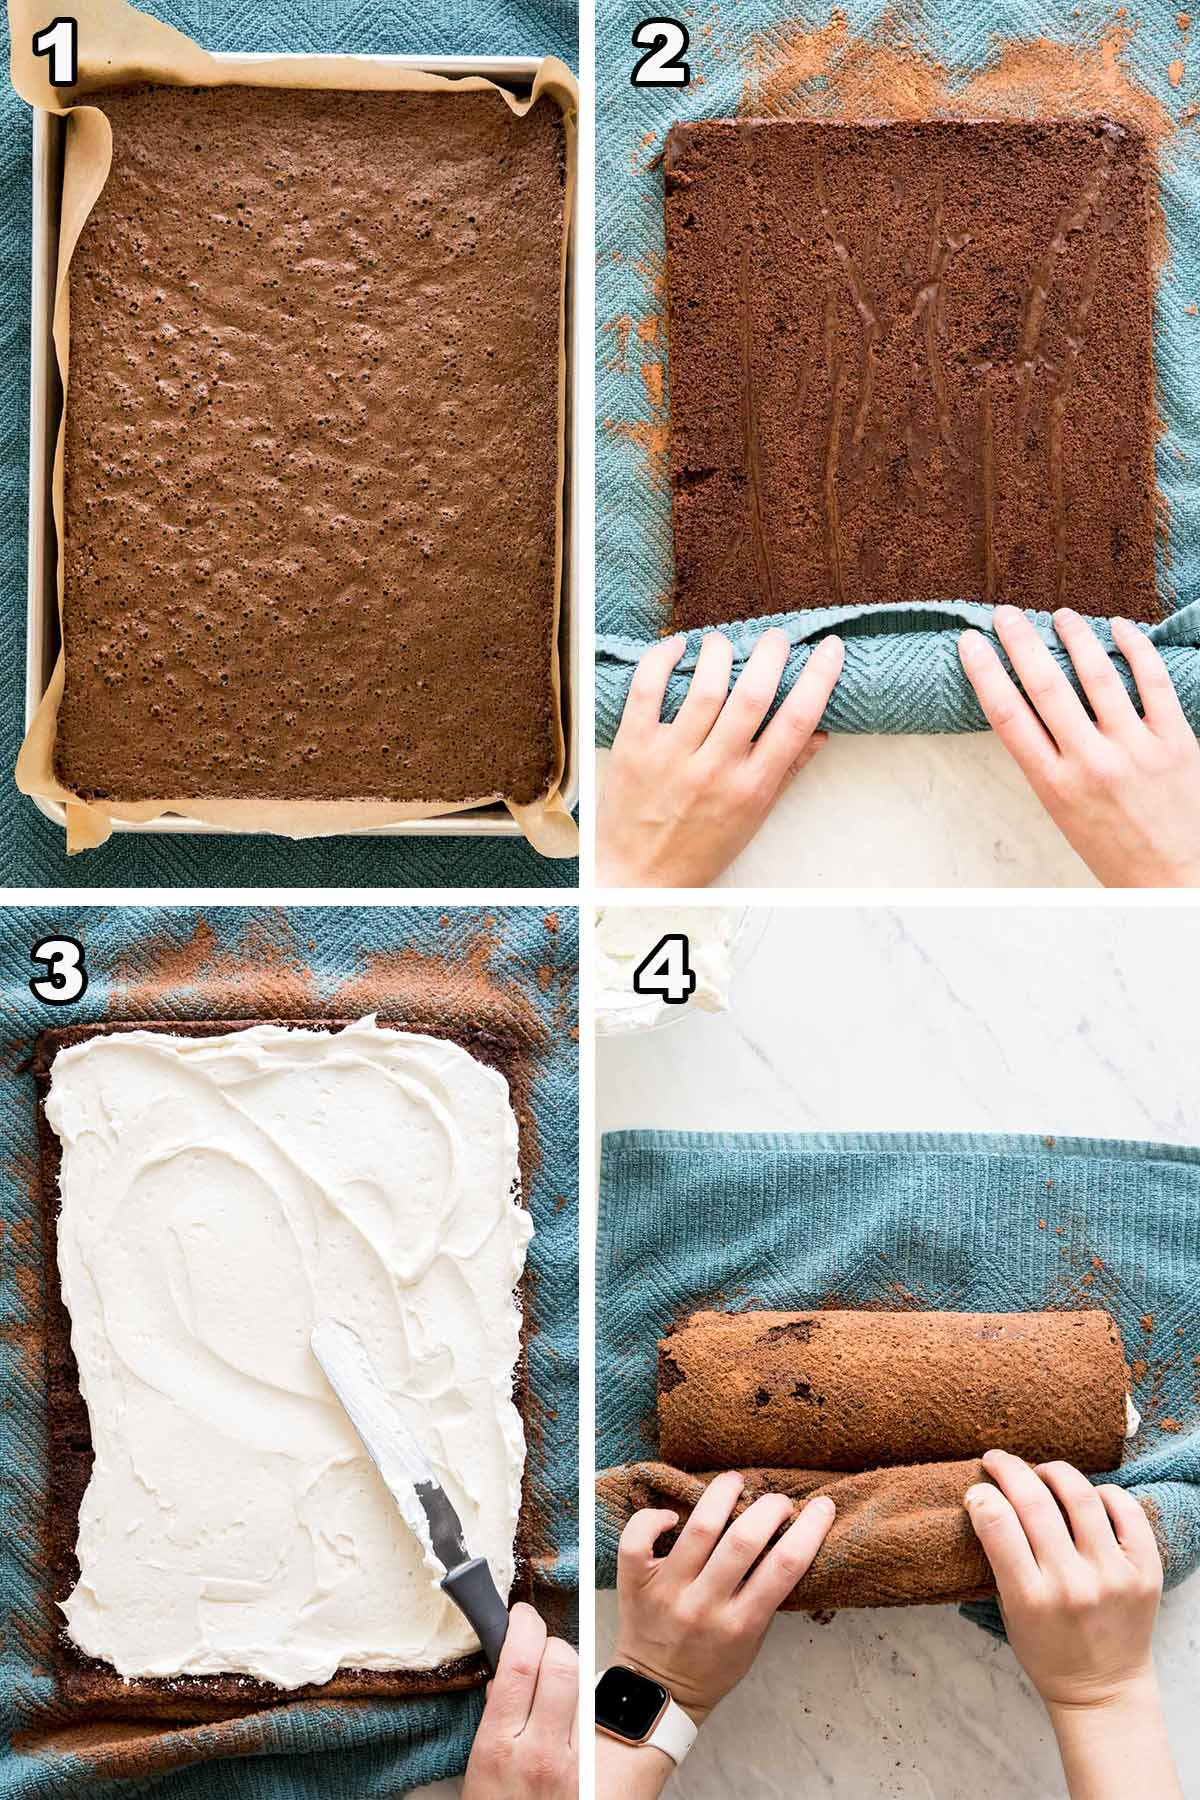 4 picture collage: 1) cake in pan 2) rolling cake 3) frosting cake 4) rolling cake again